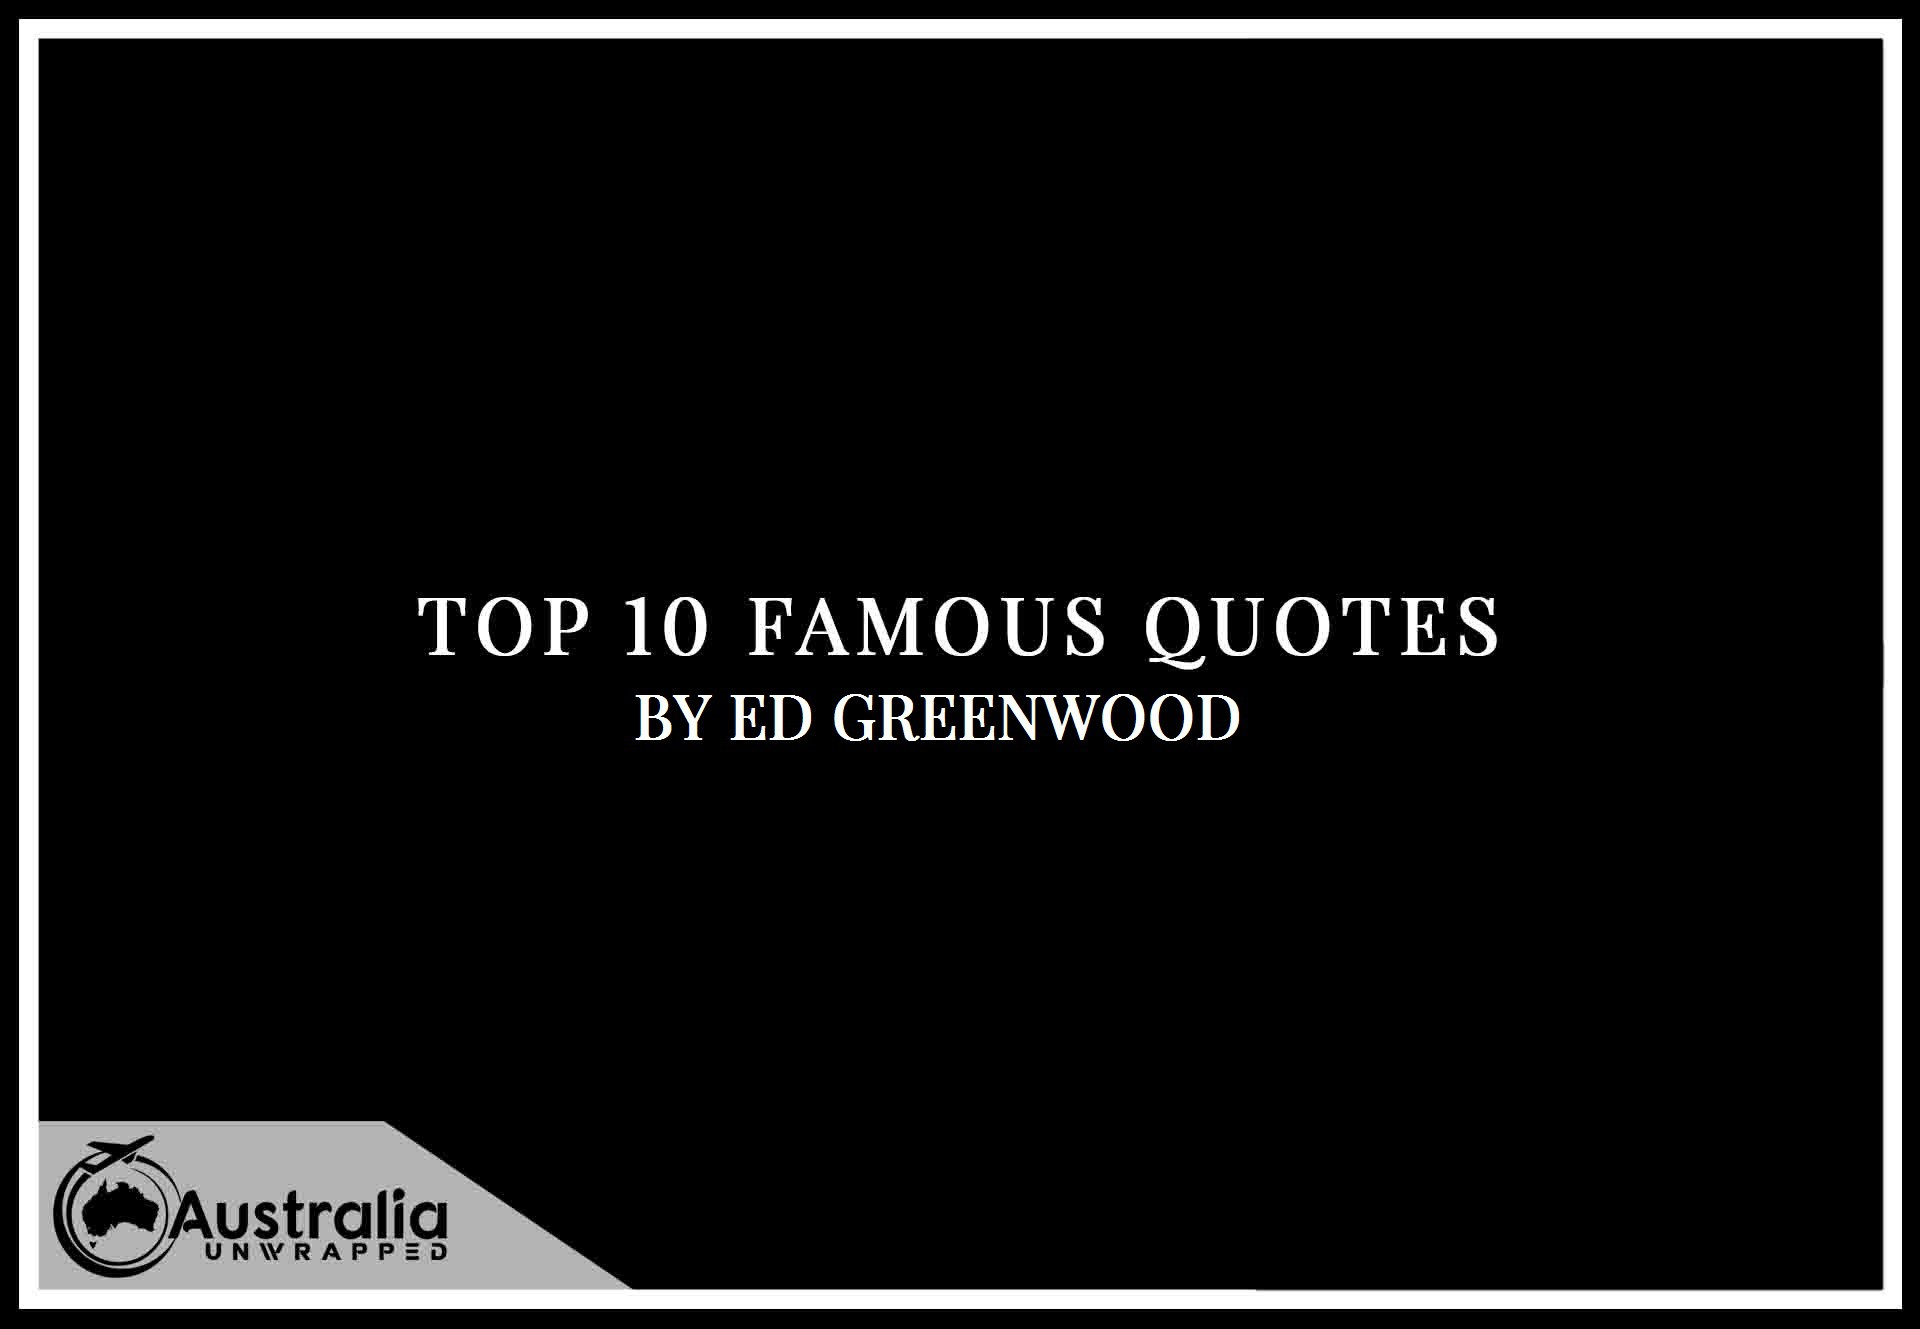 Ed Greenwood's Top 10 Popular and Famous Quotes